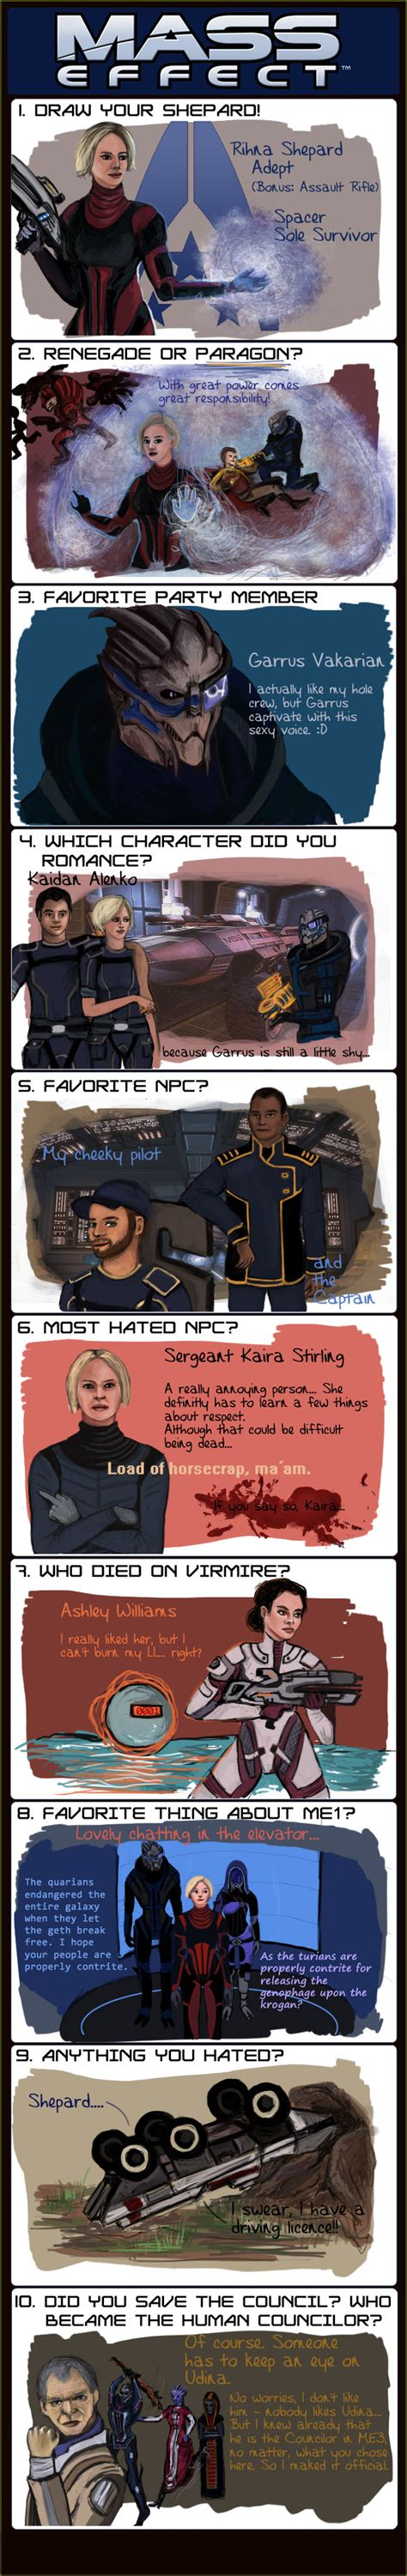 Mass Text Meme - mass effect meme by alvadea on deviantart